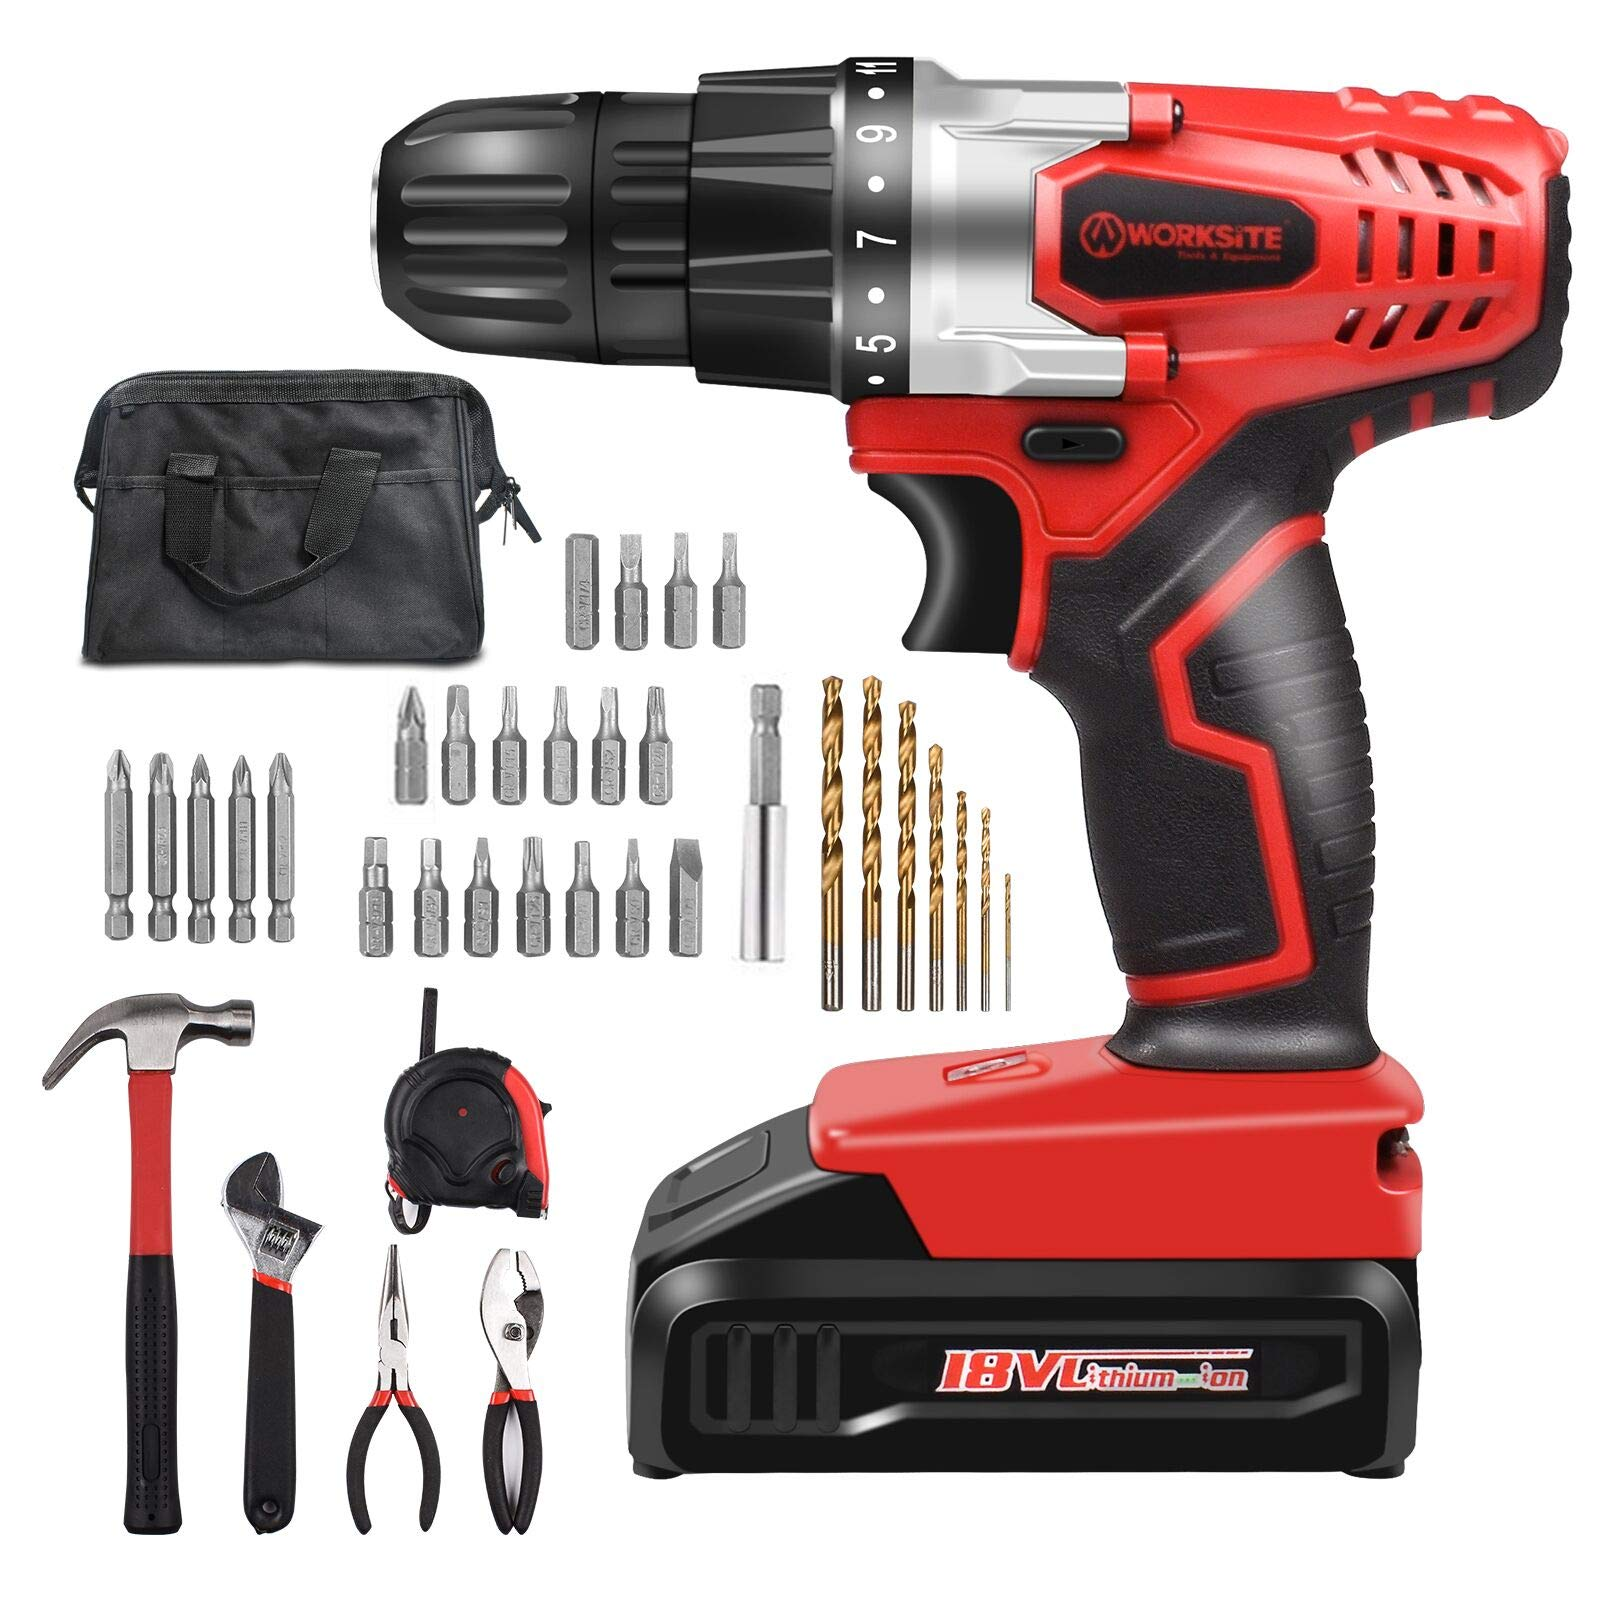 Huge Tool Kit At A Great Price!